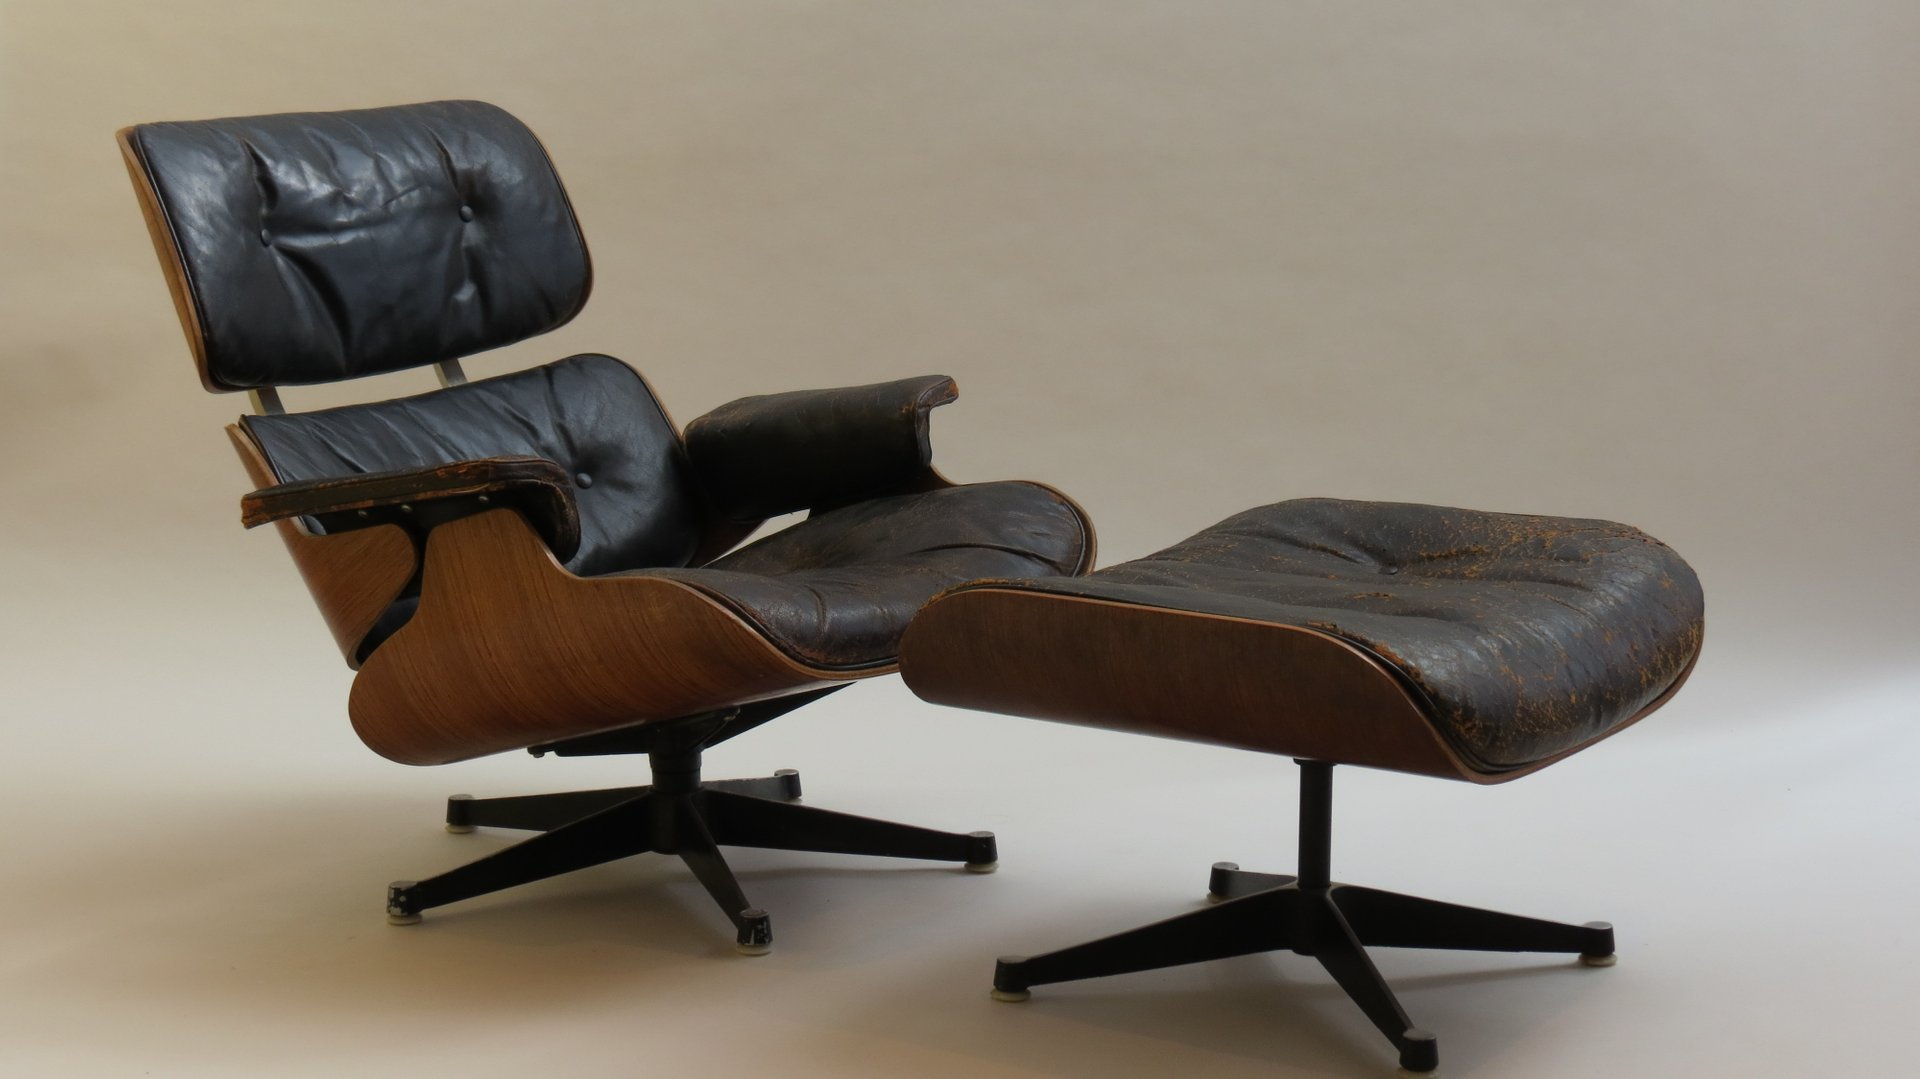 670 lounger 671 ottoman by charles and ray eames for hille 1959 for sale at pamono. Black Bedroom Furniture Sets. Home Design Ideas